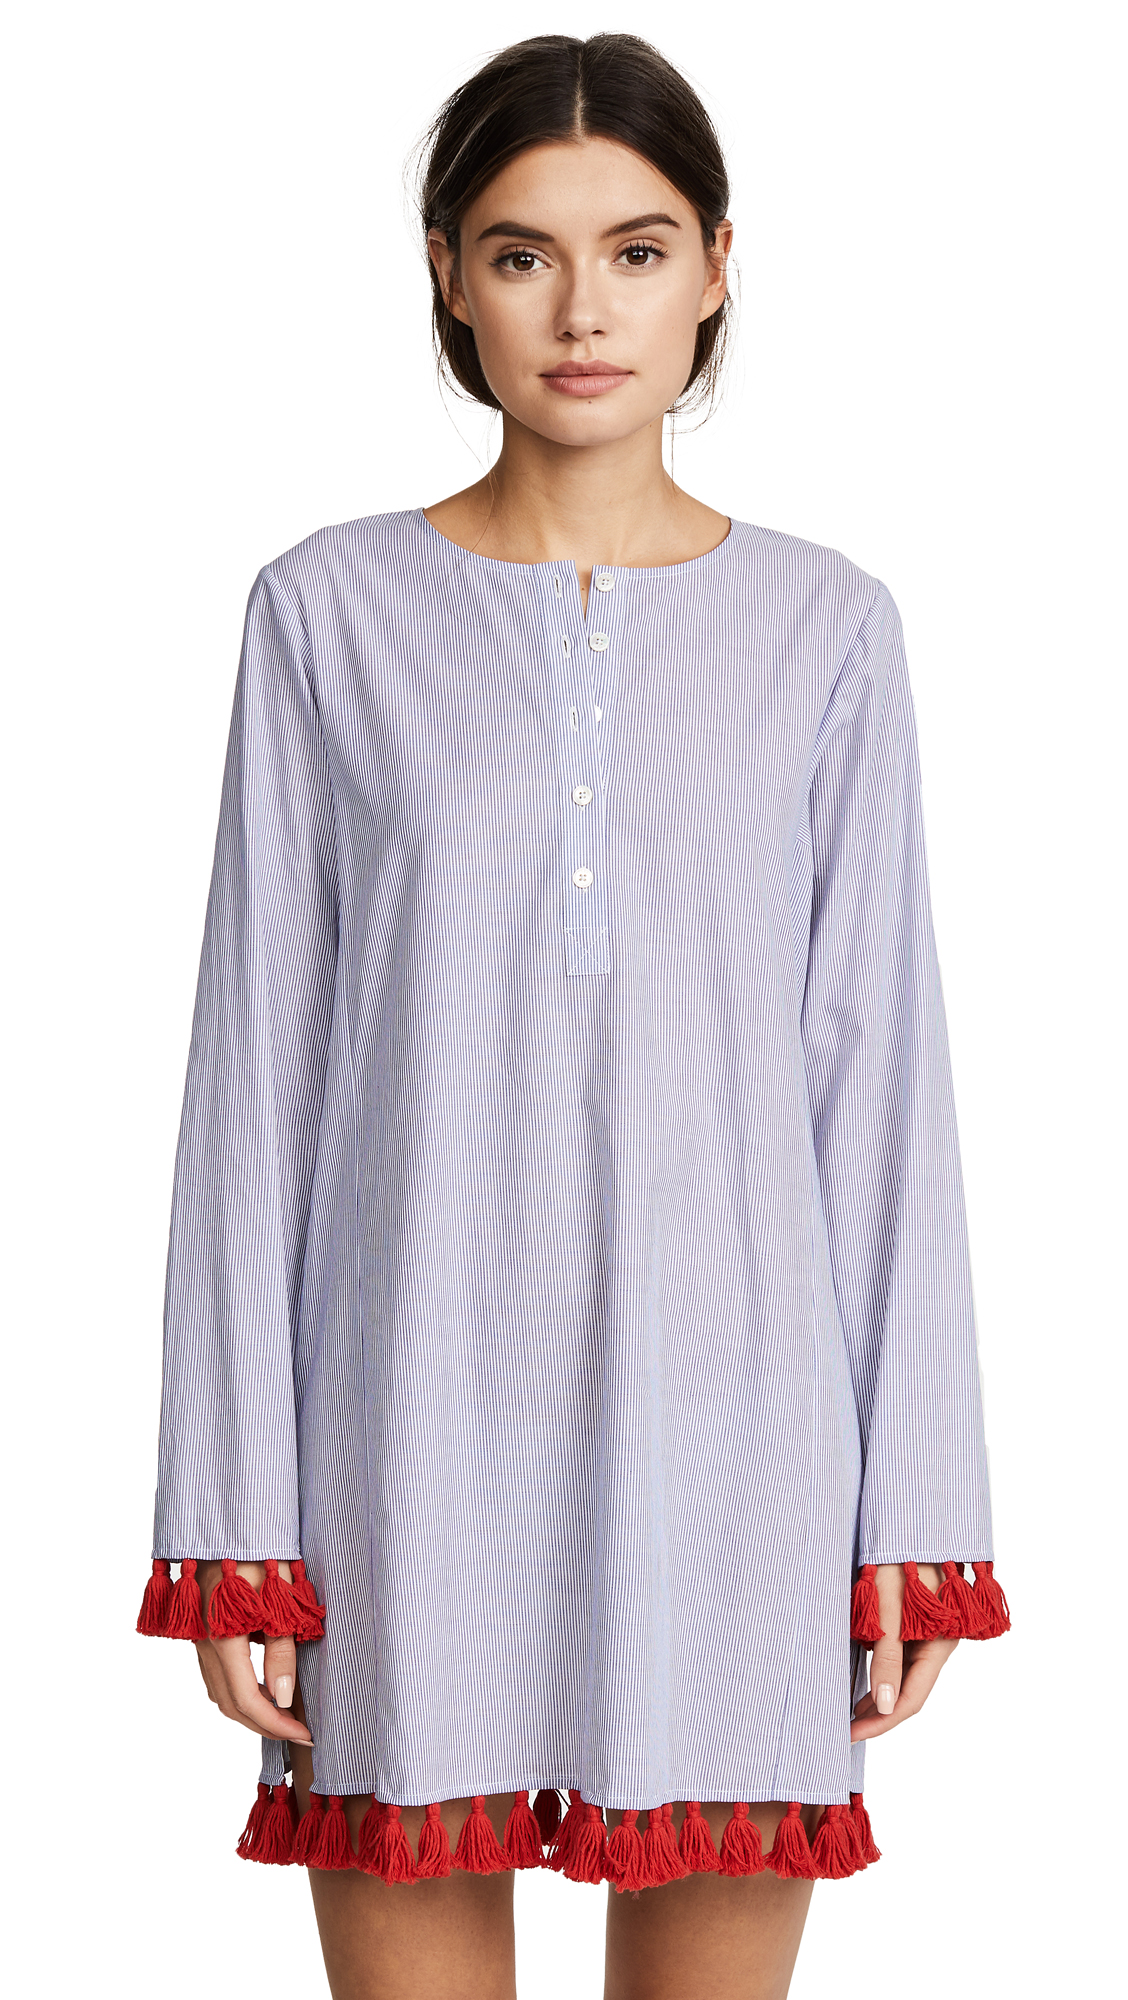 Tory Burch Tassel Cover Up Tunic - Blue/White